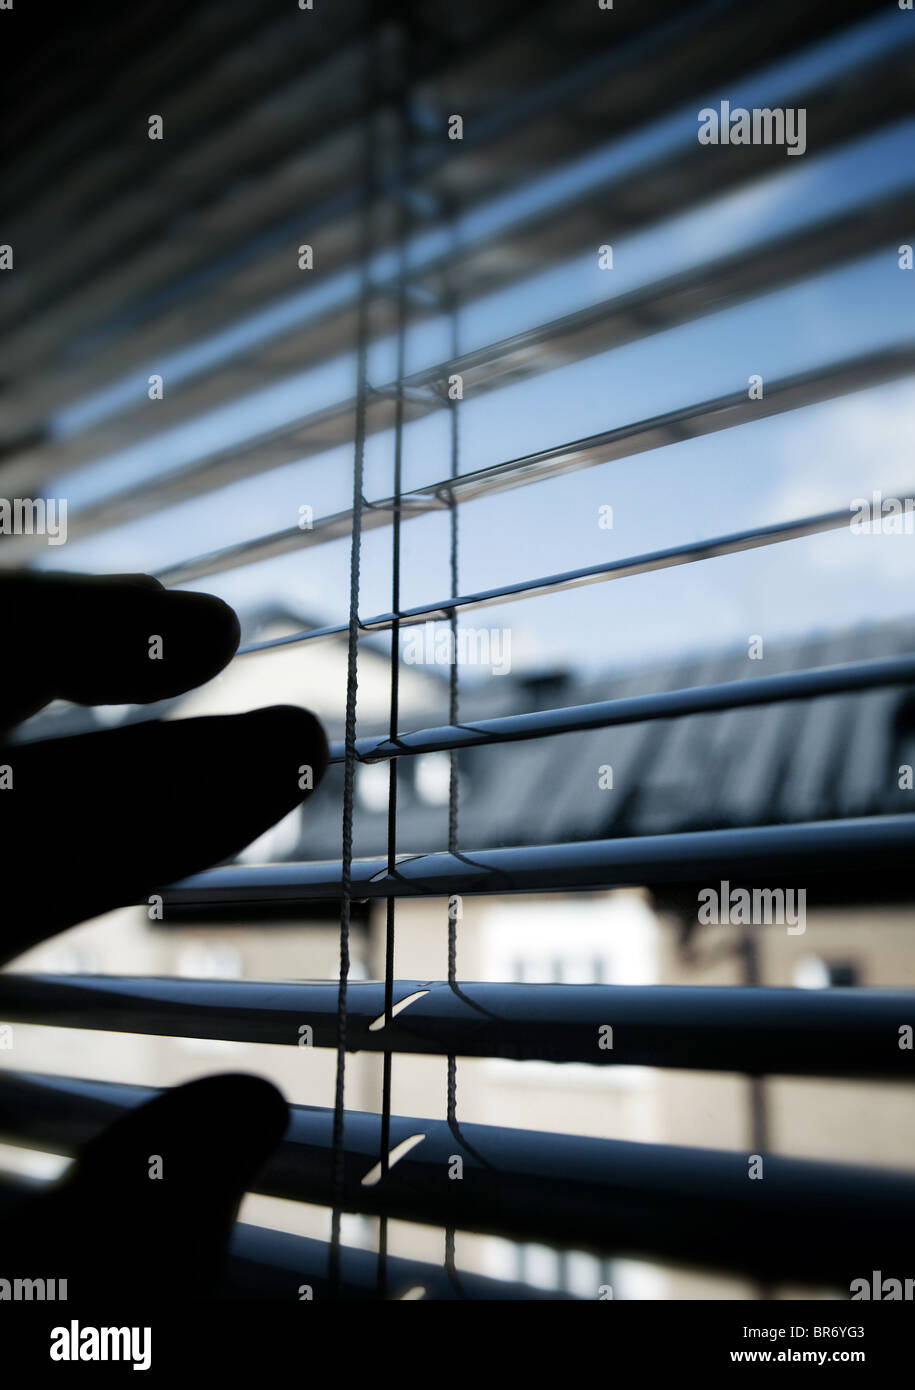 take a look outside - Stock Image